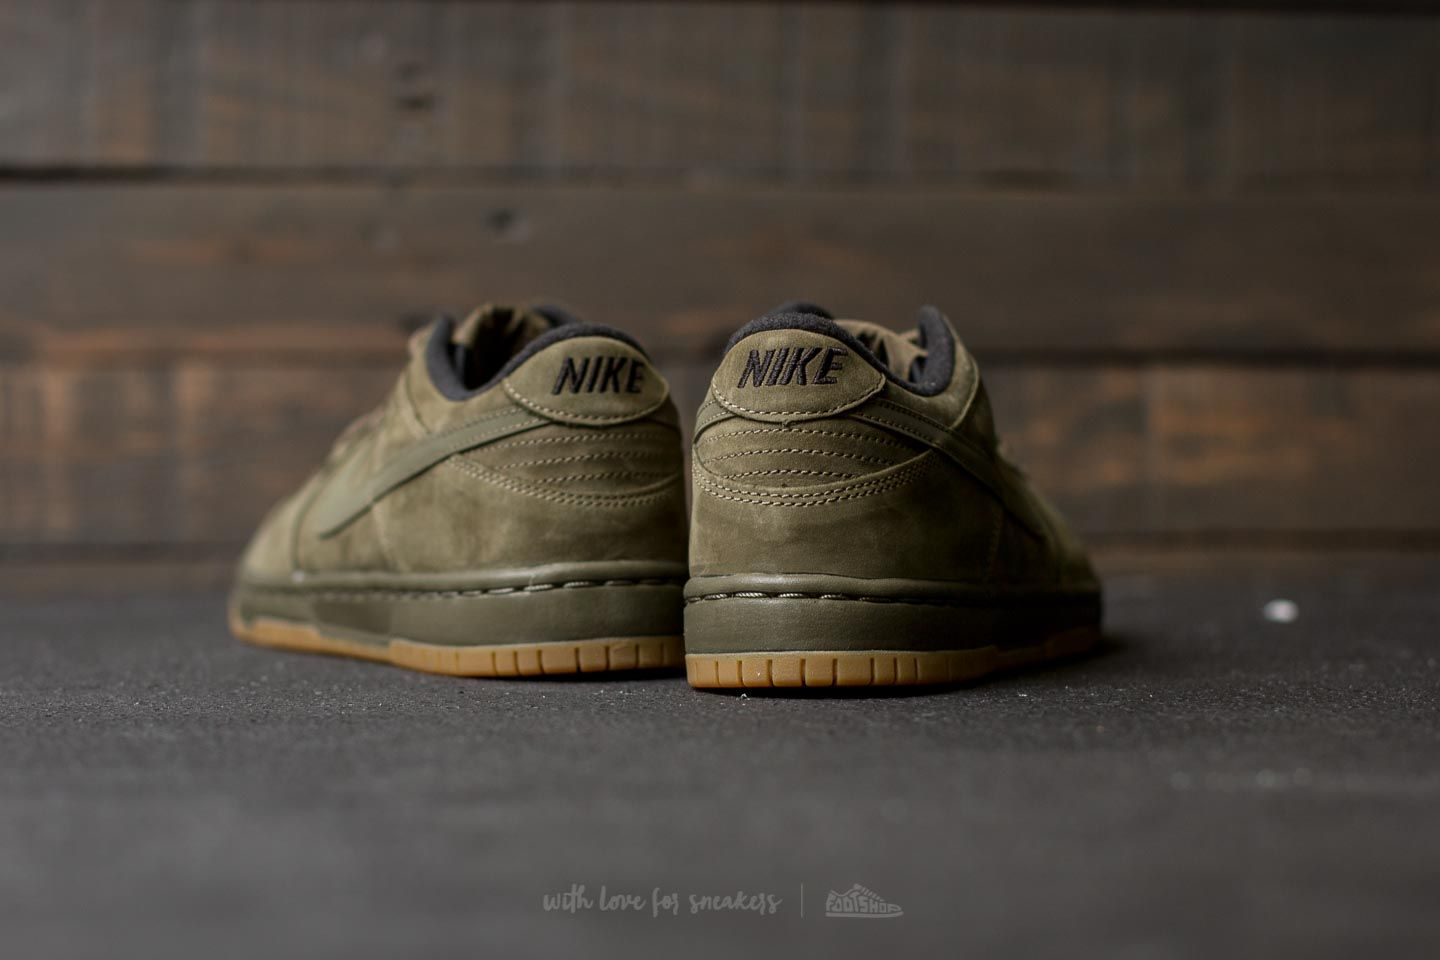 esfera engranaje hipoteca  Women's shoes Nike Dunk Low Winter Premium (GS) Medium Olive/ Medium Olive  | Footshop